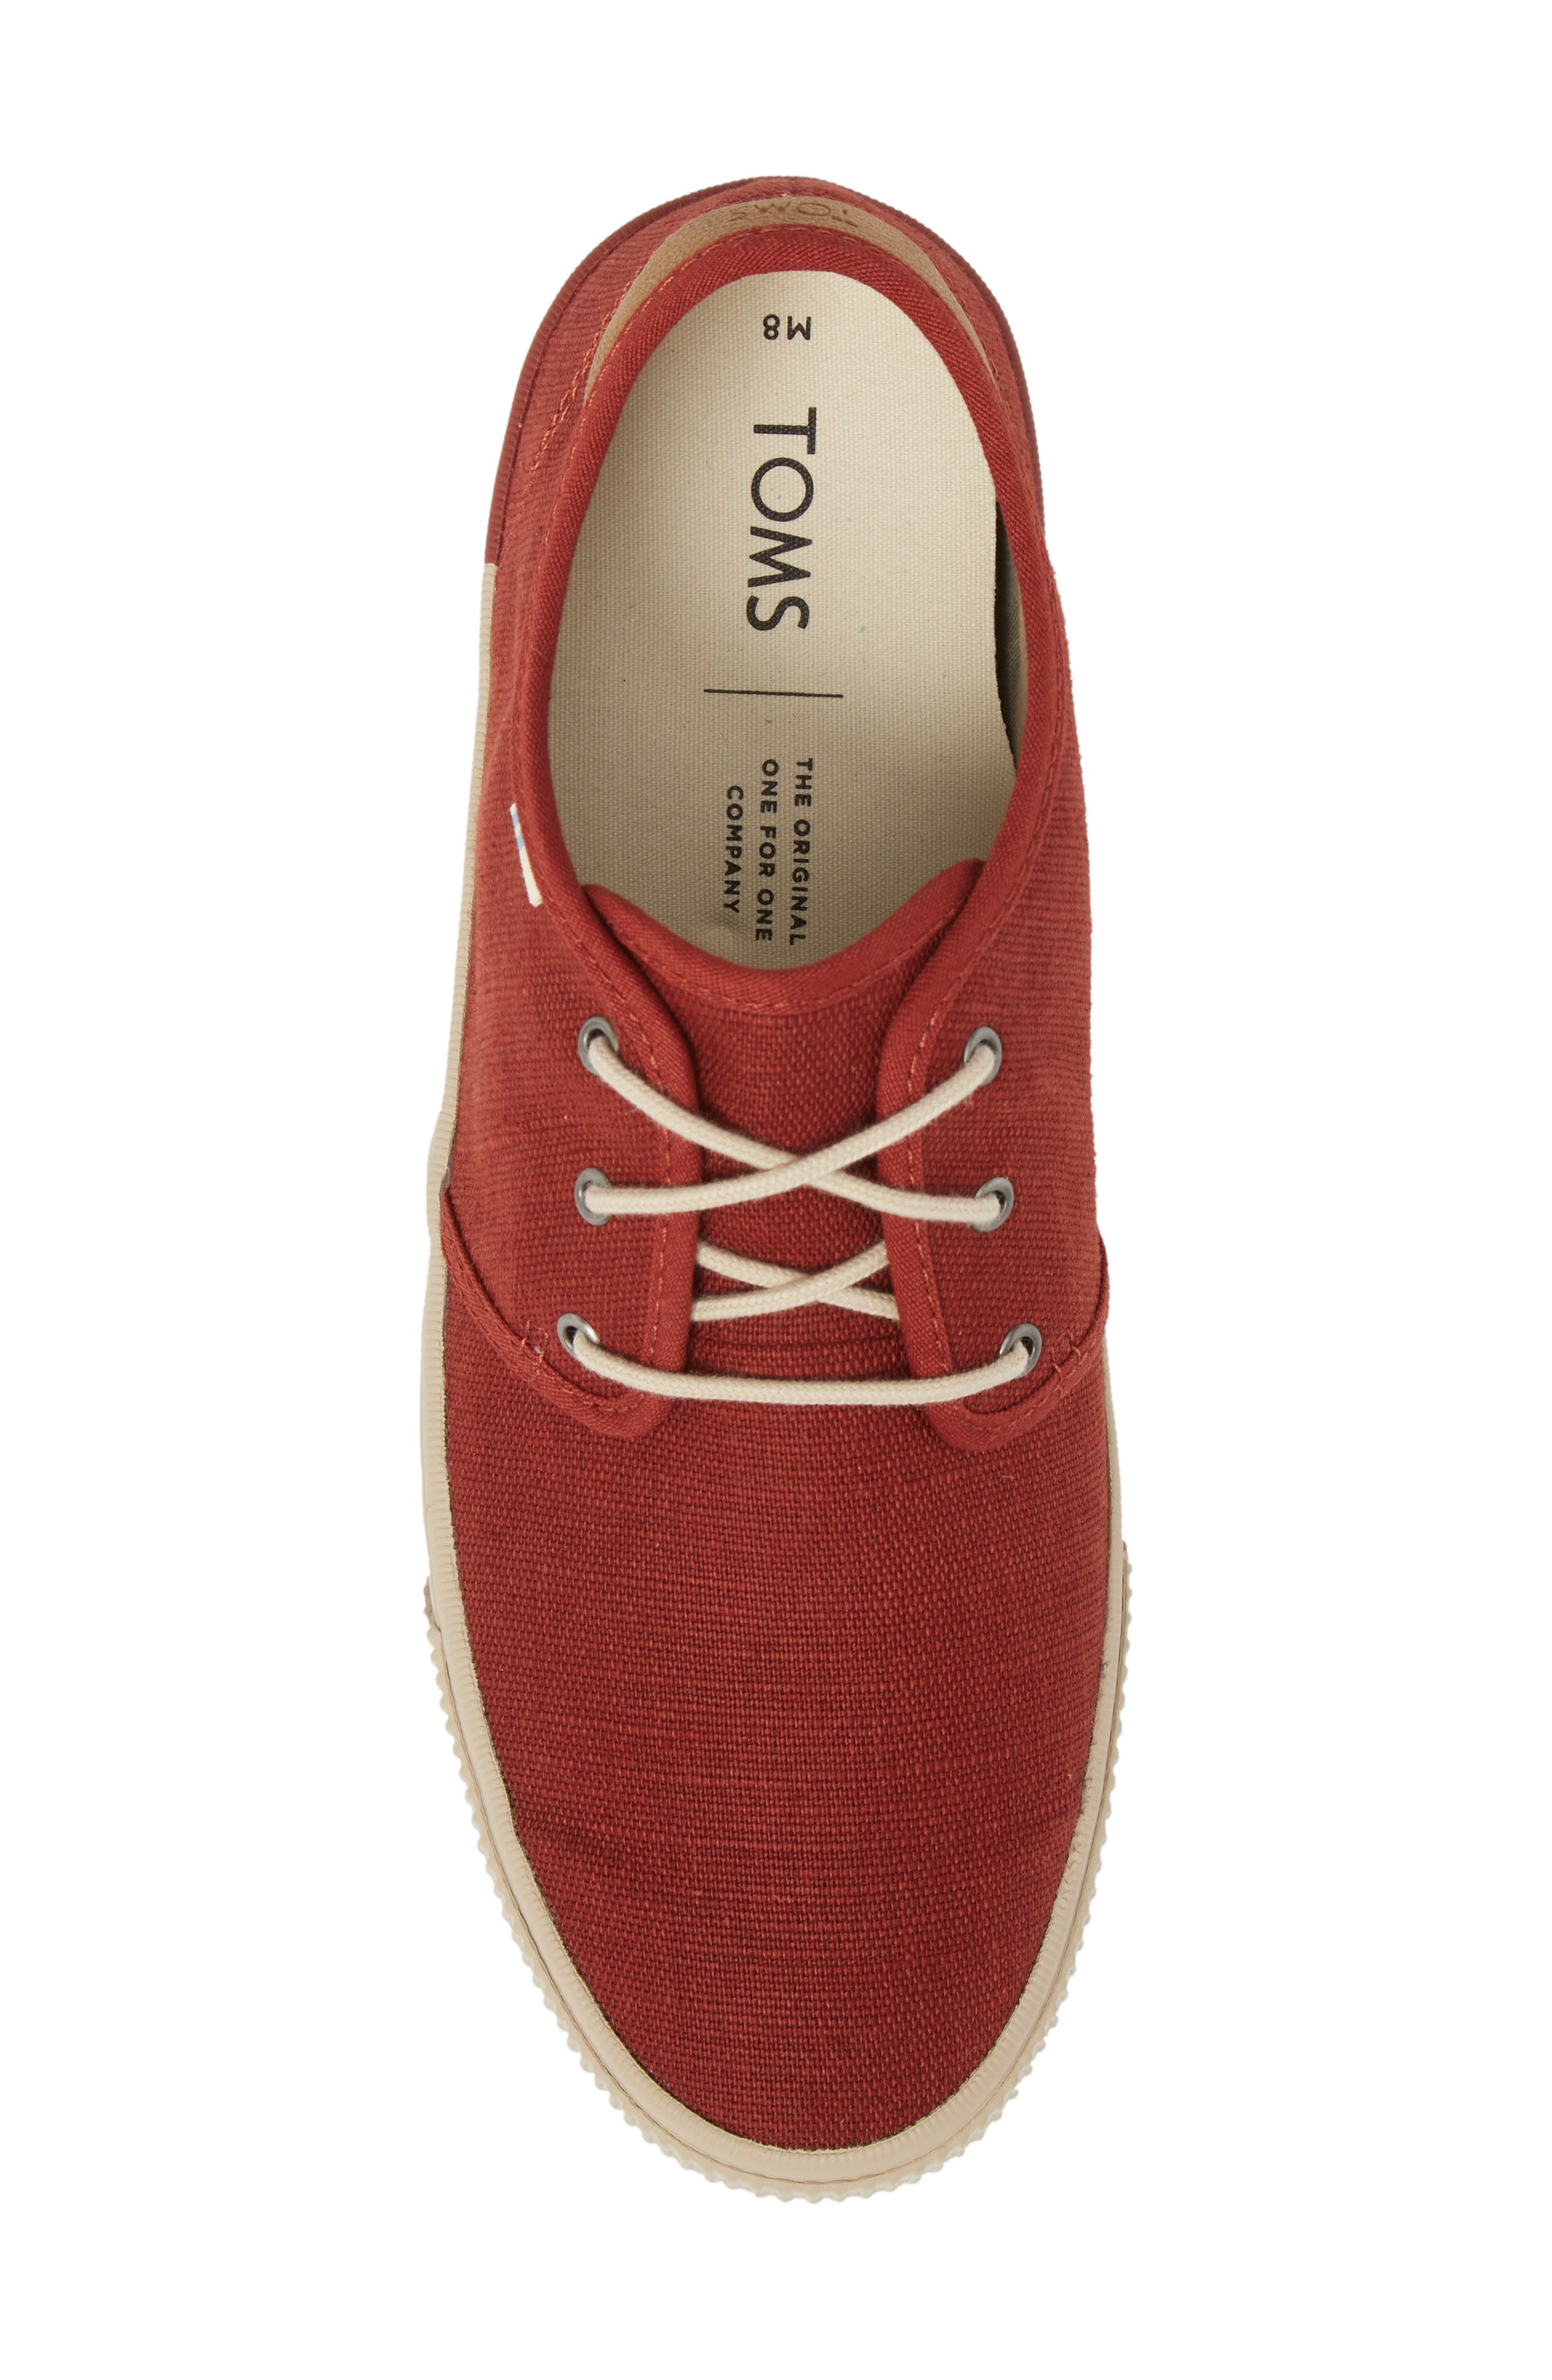 Carlo Low Top Sneaker,                             Alternate thumbnail 3, color,                             Burnt Henna Heritage Canvas